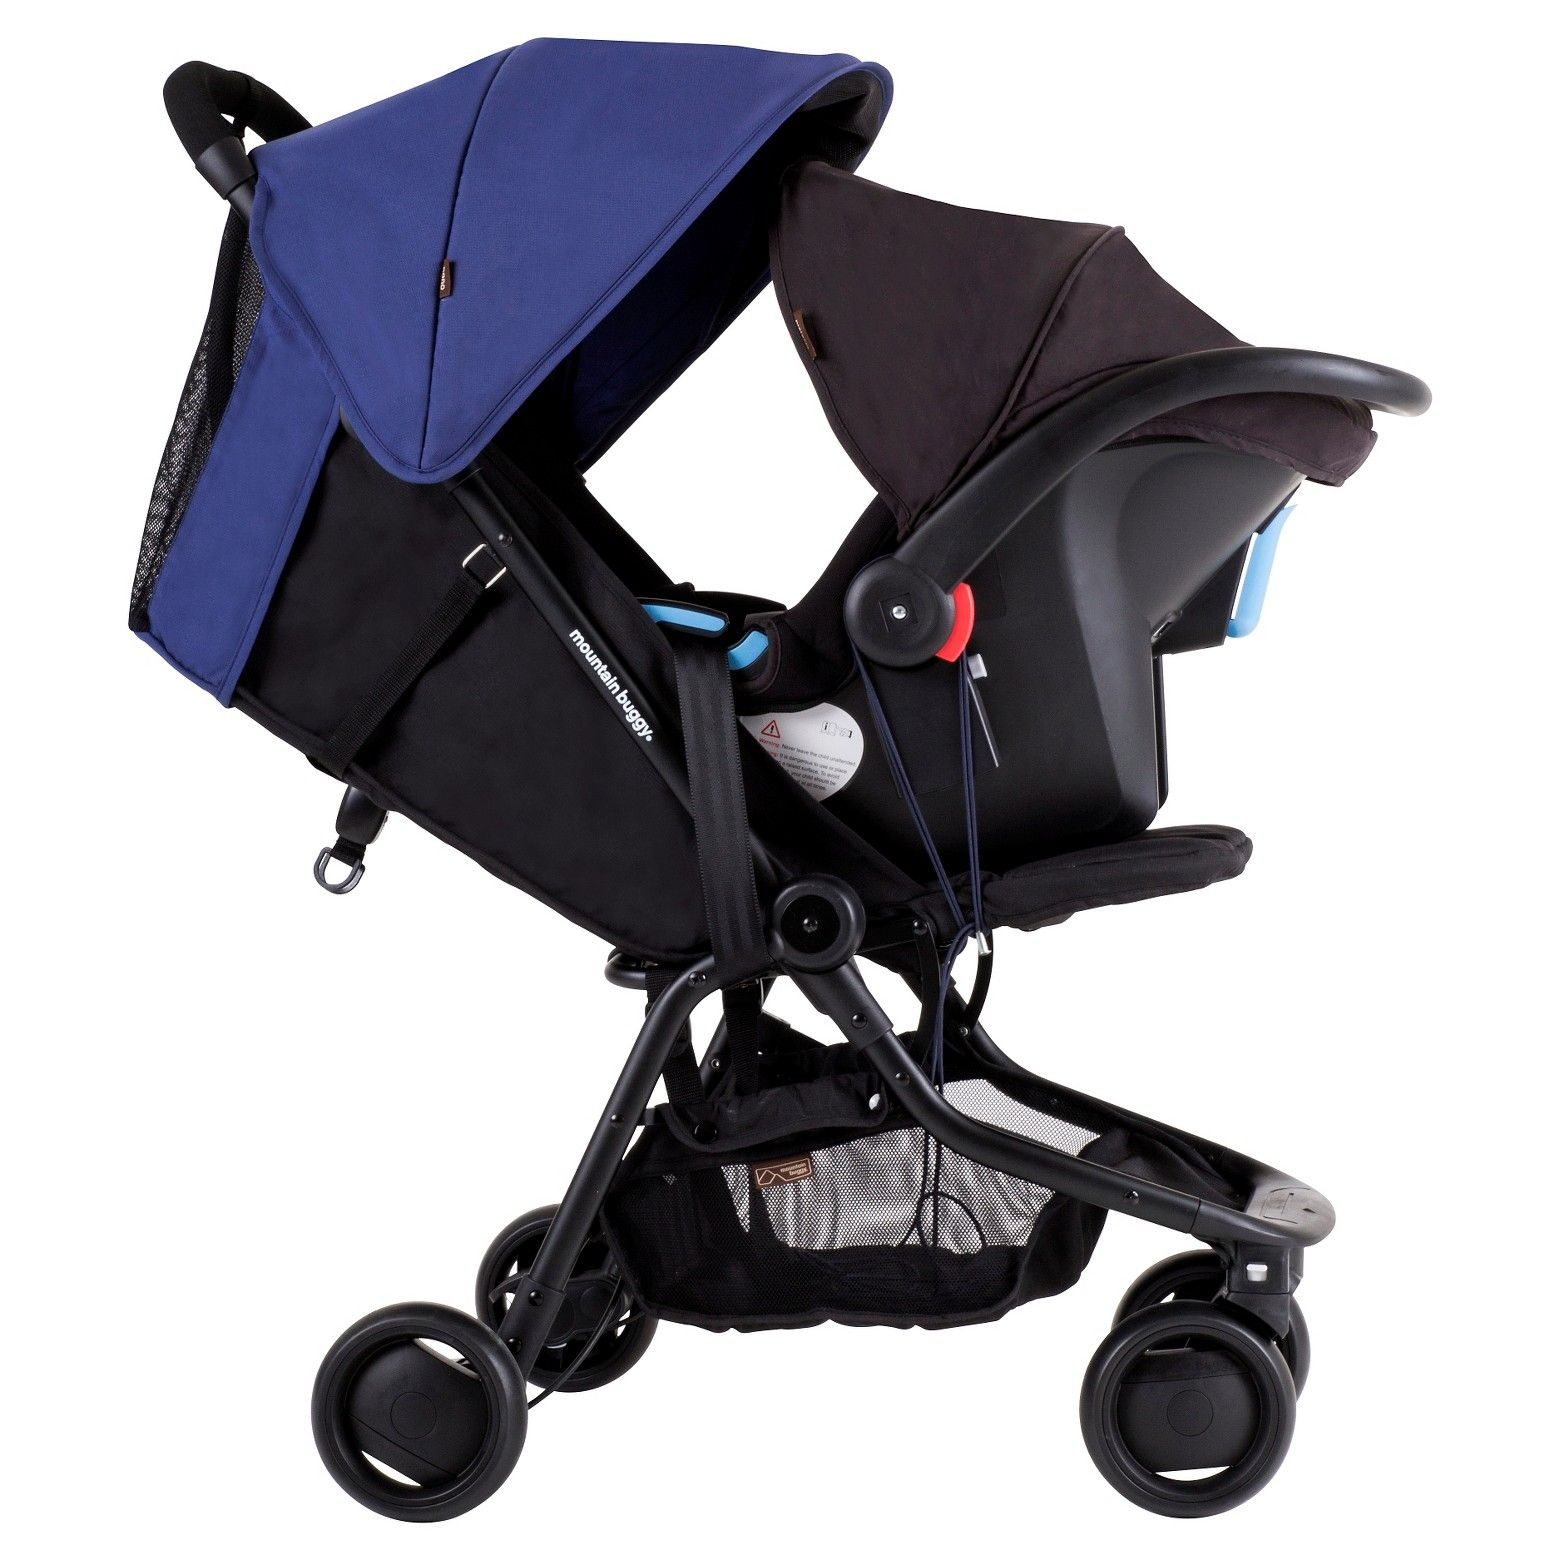 Mountain Buggy Nano is the ultimate travel companion that